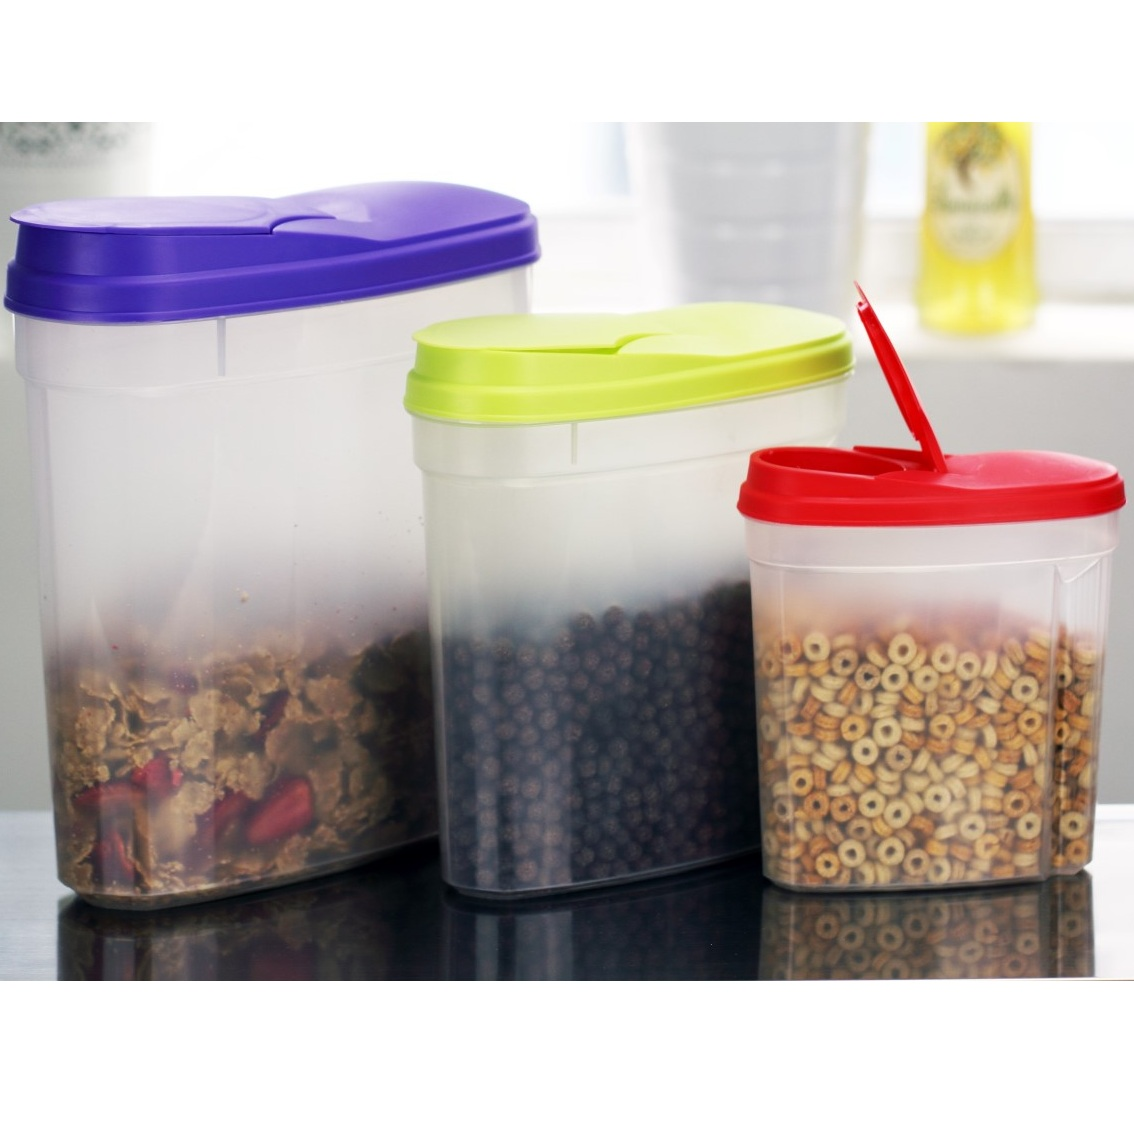 3pc Cereal Dispenser Container Set Airtight Fresh Seal Lids Food Storage Snacks